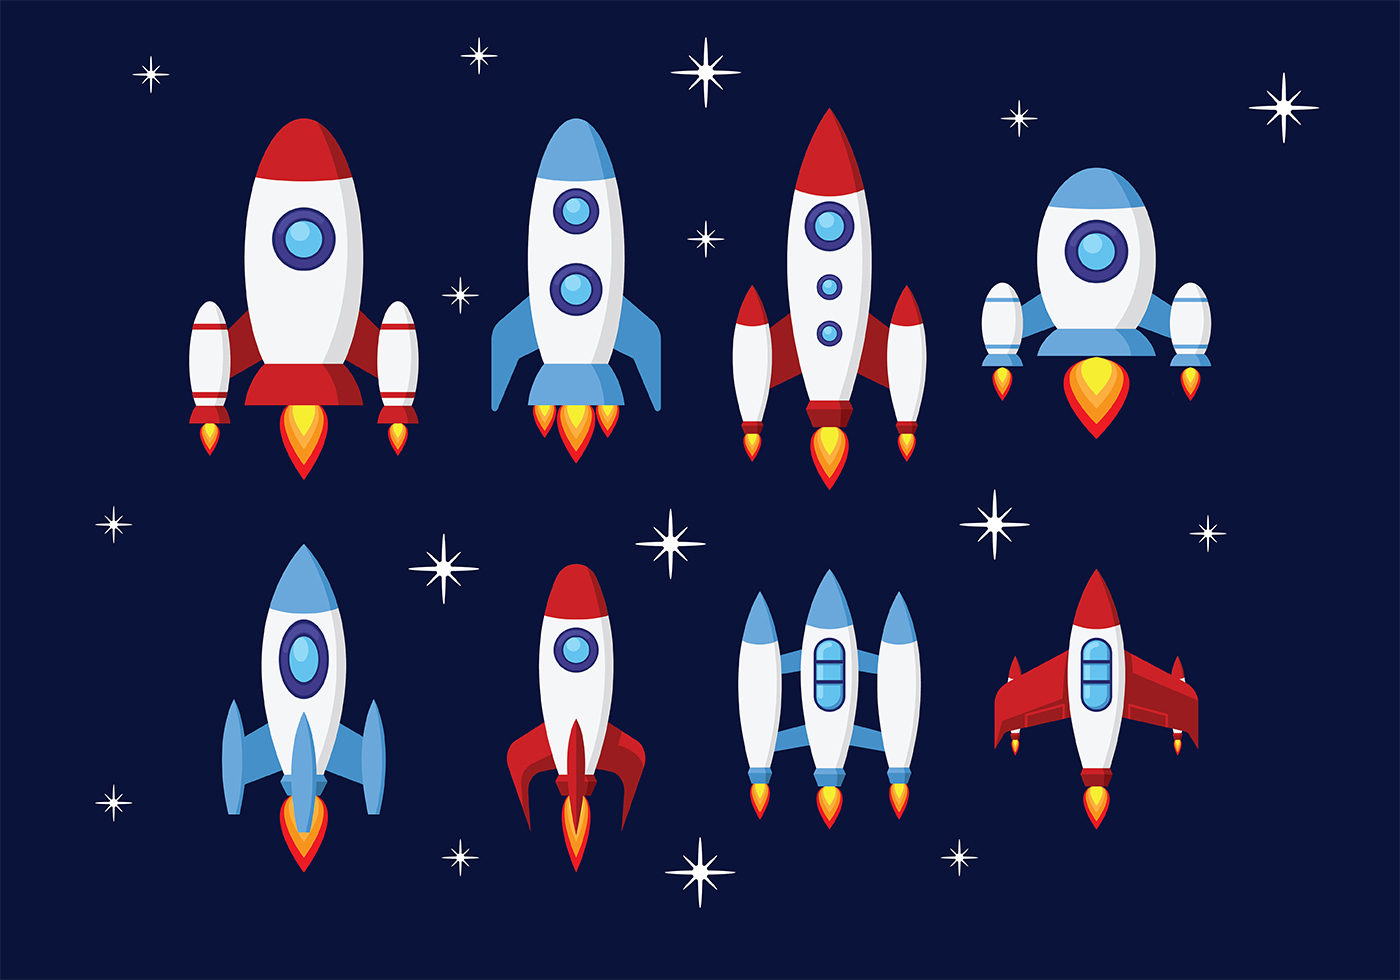 Rocket Free Vector Art